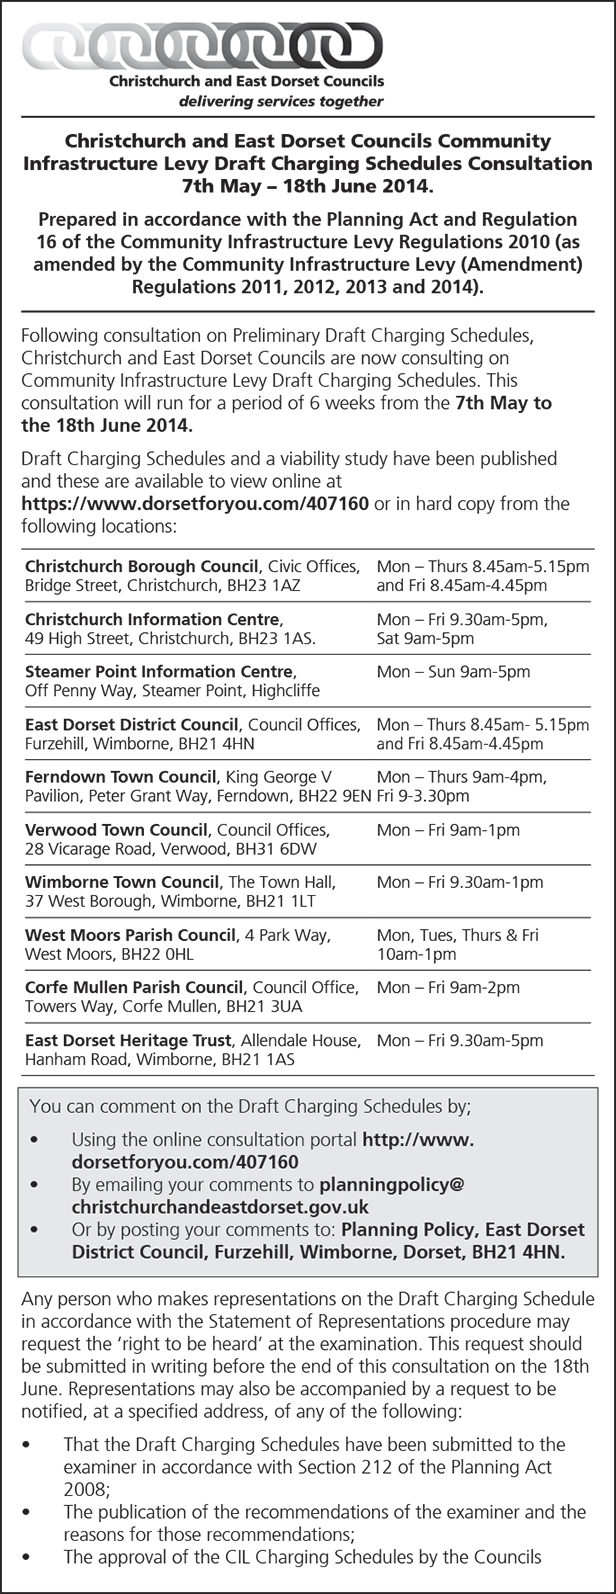 Christchurch and East Dorset Councils public notice